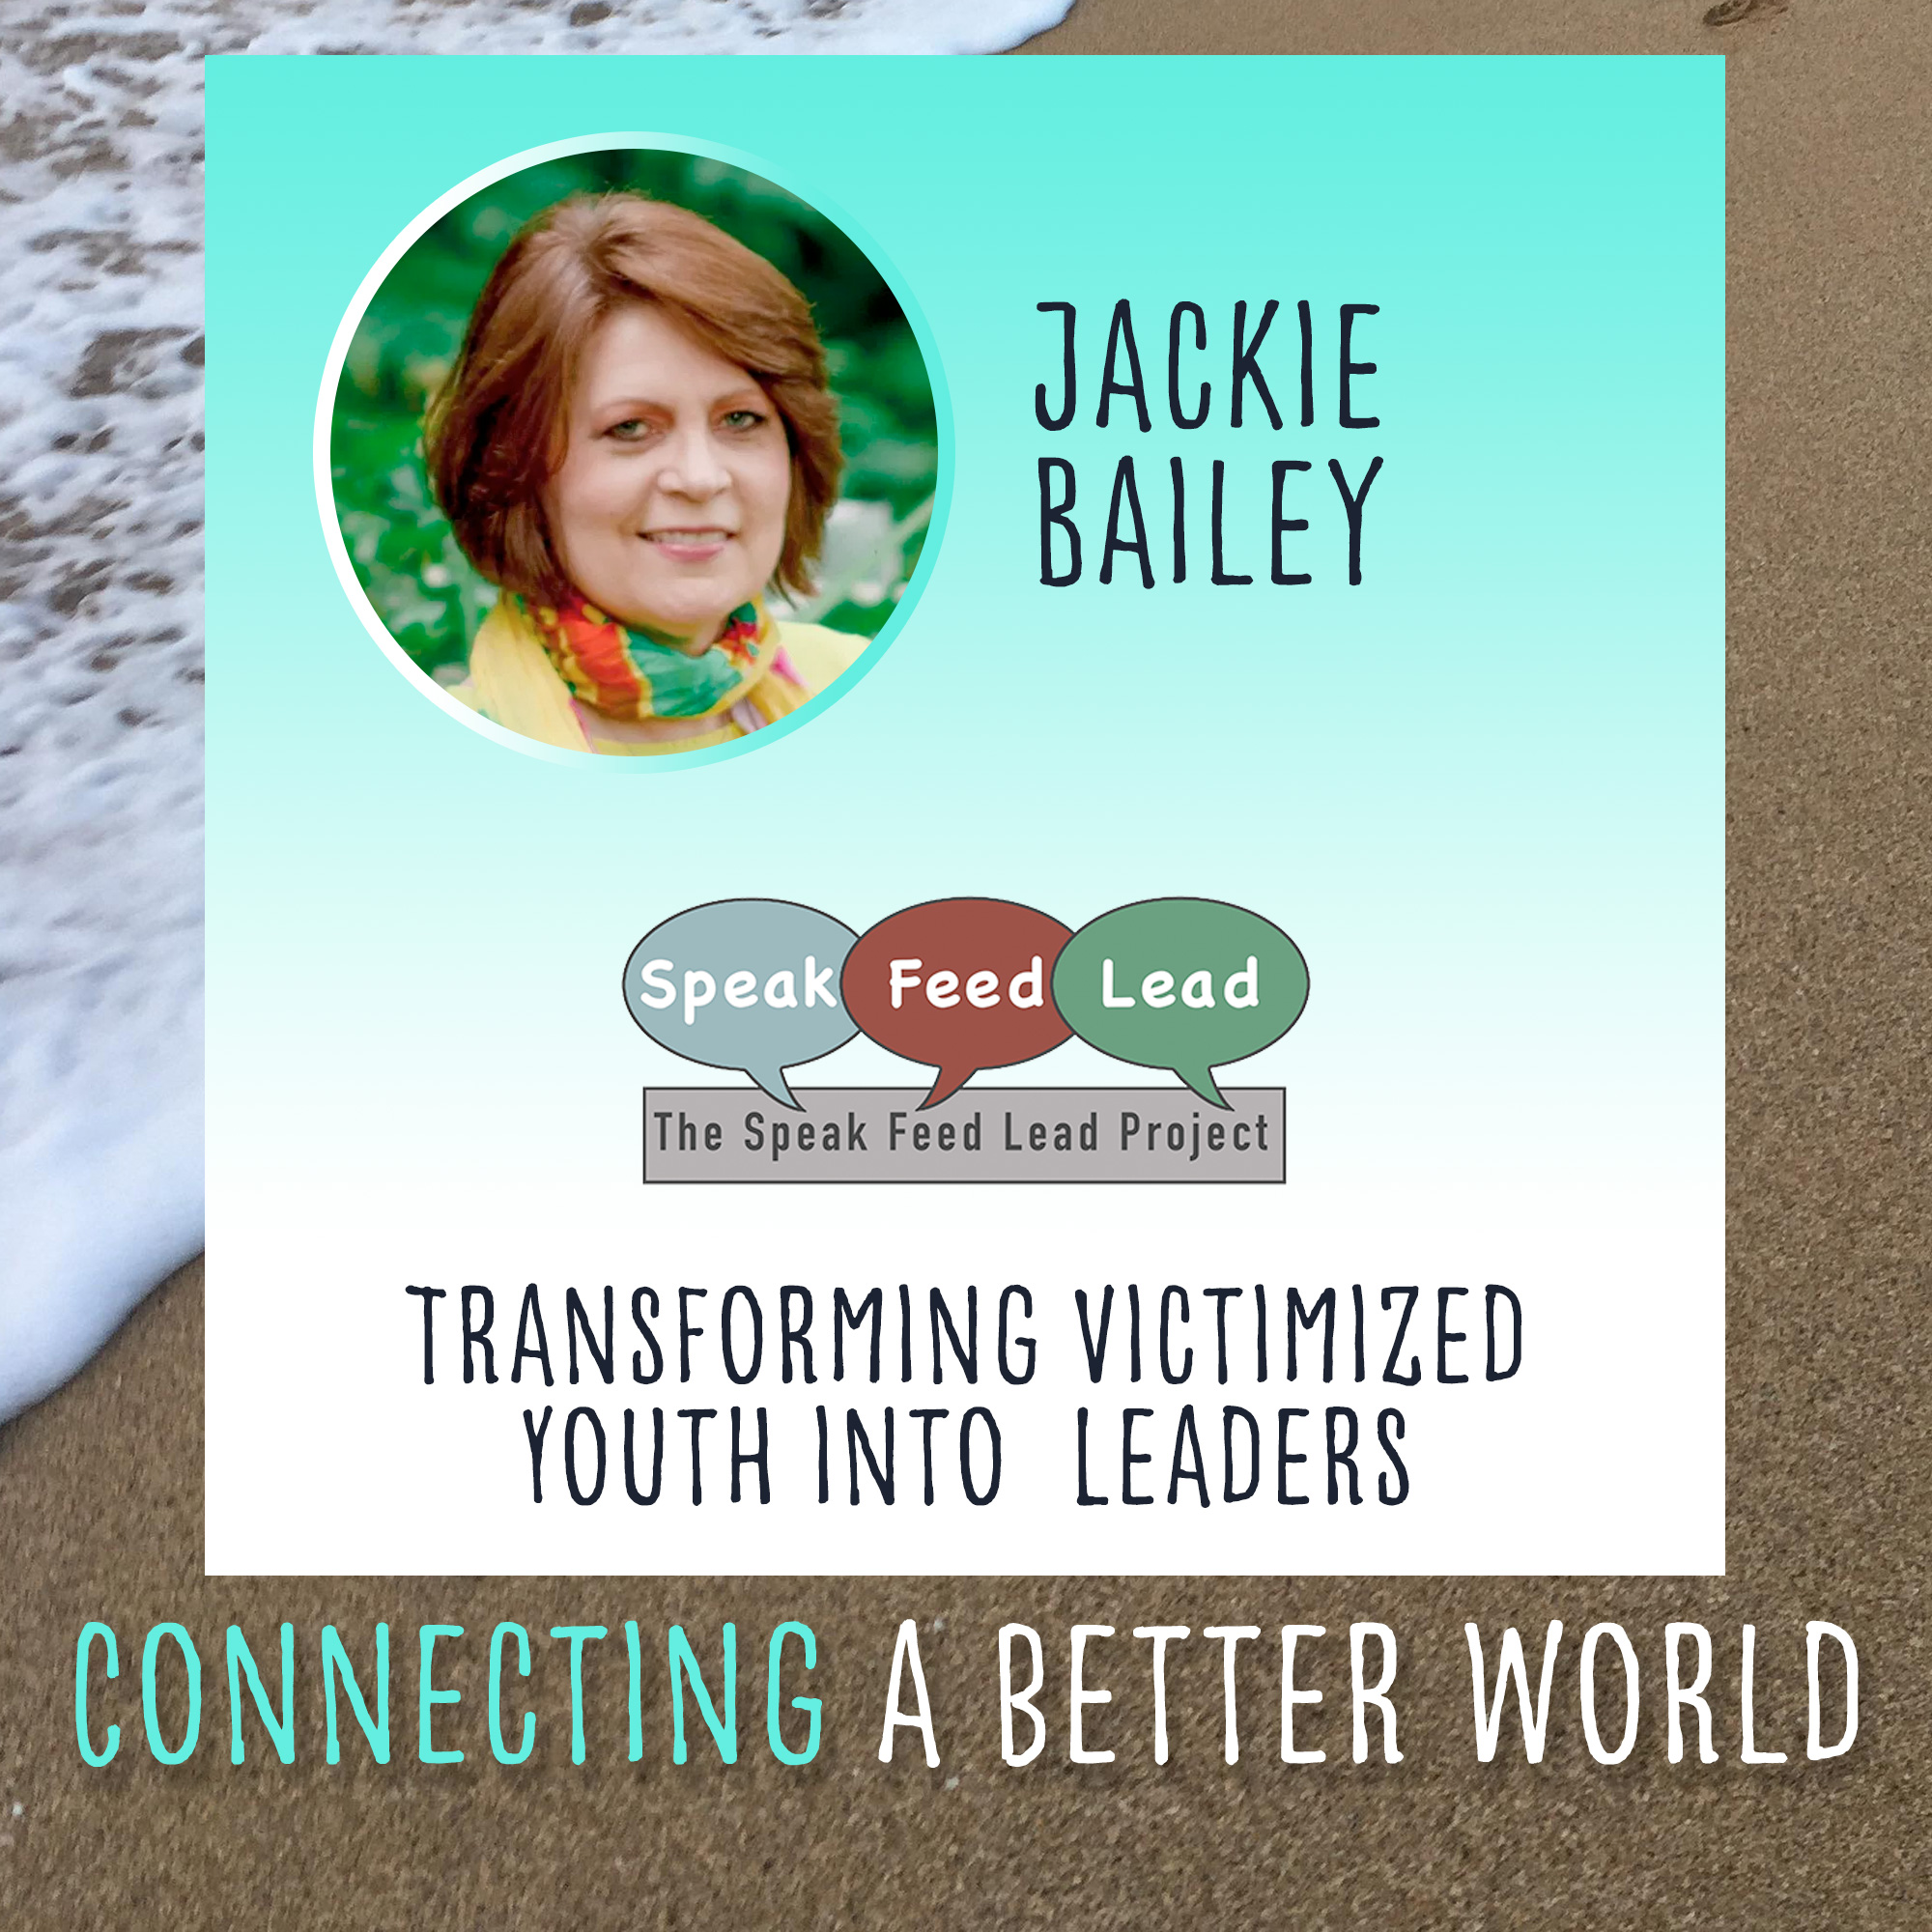 Transforming Victimized Youth into Leaders Through Public Speaking